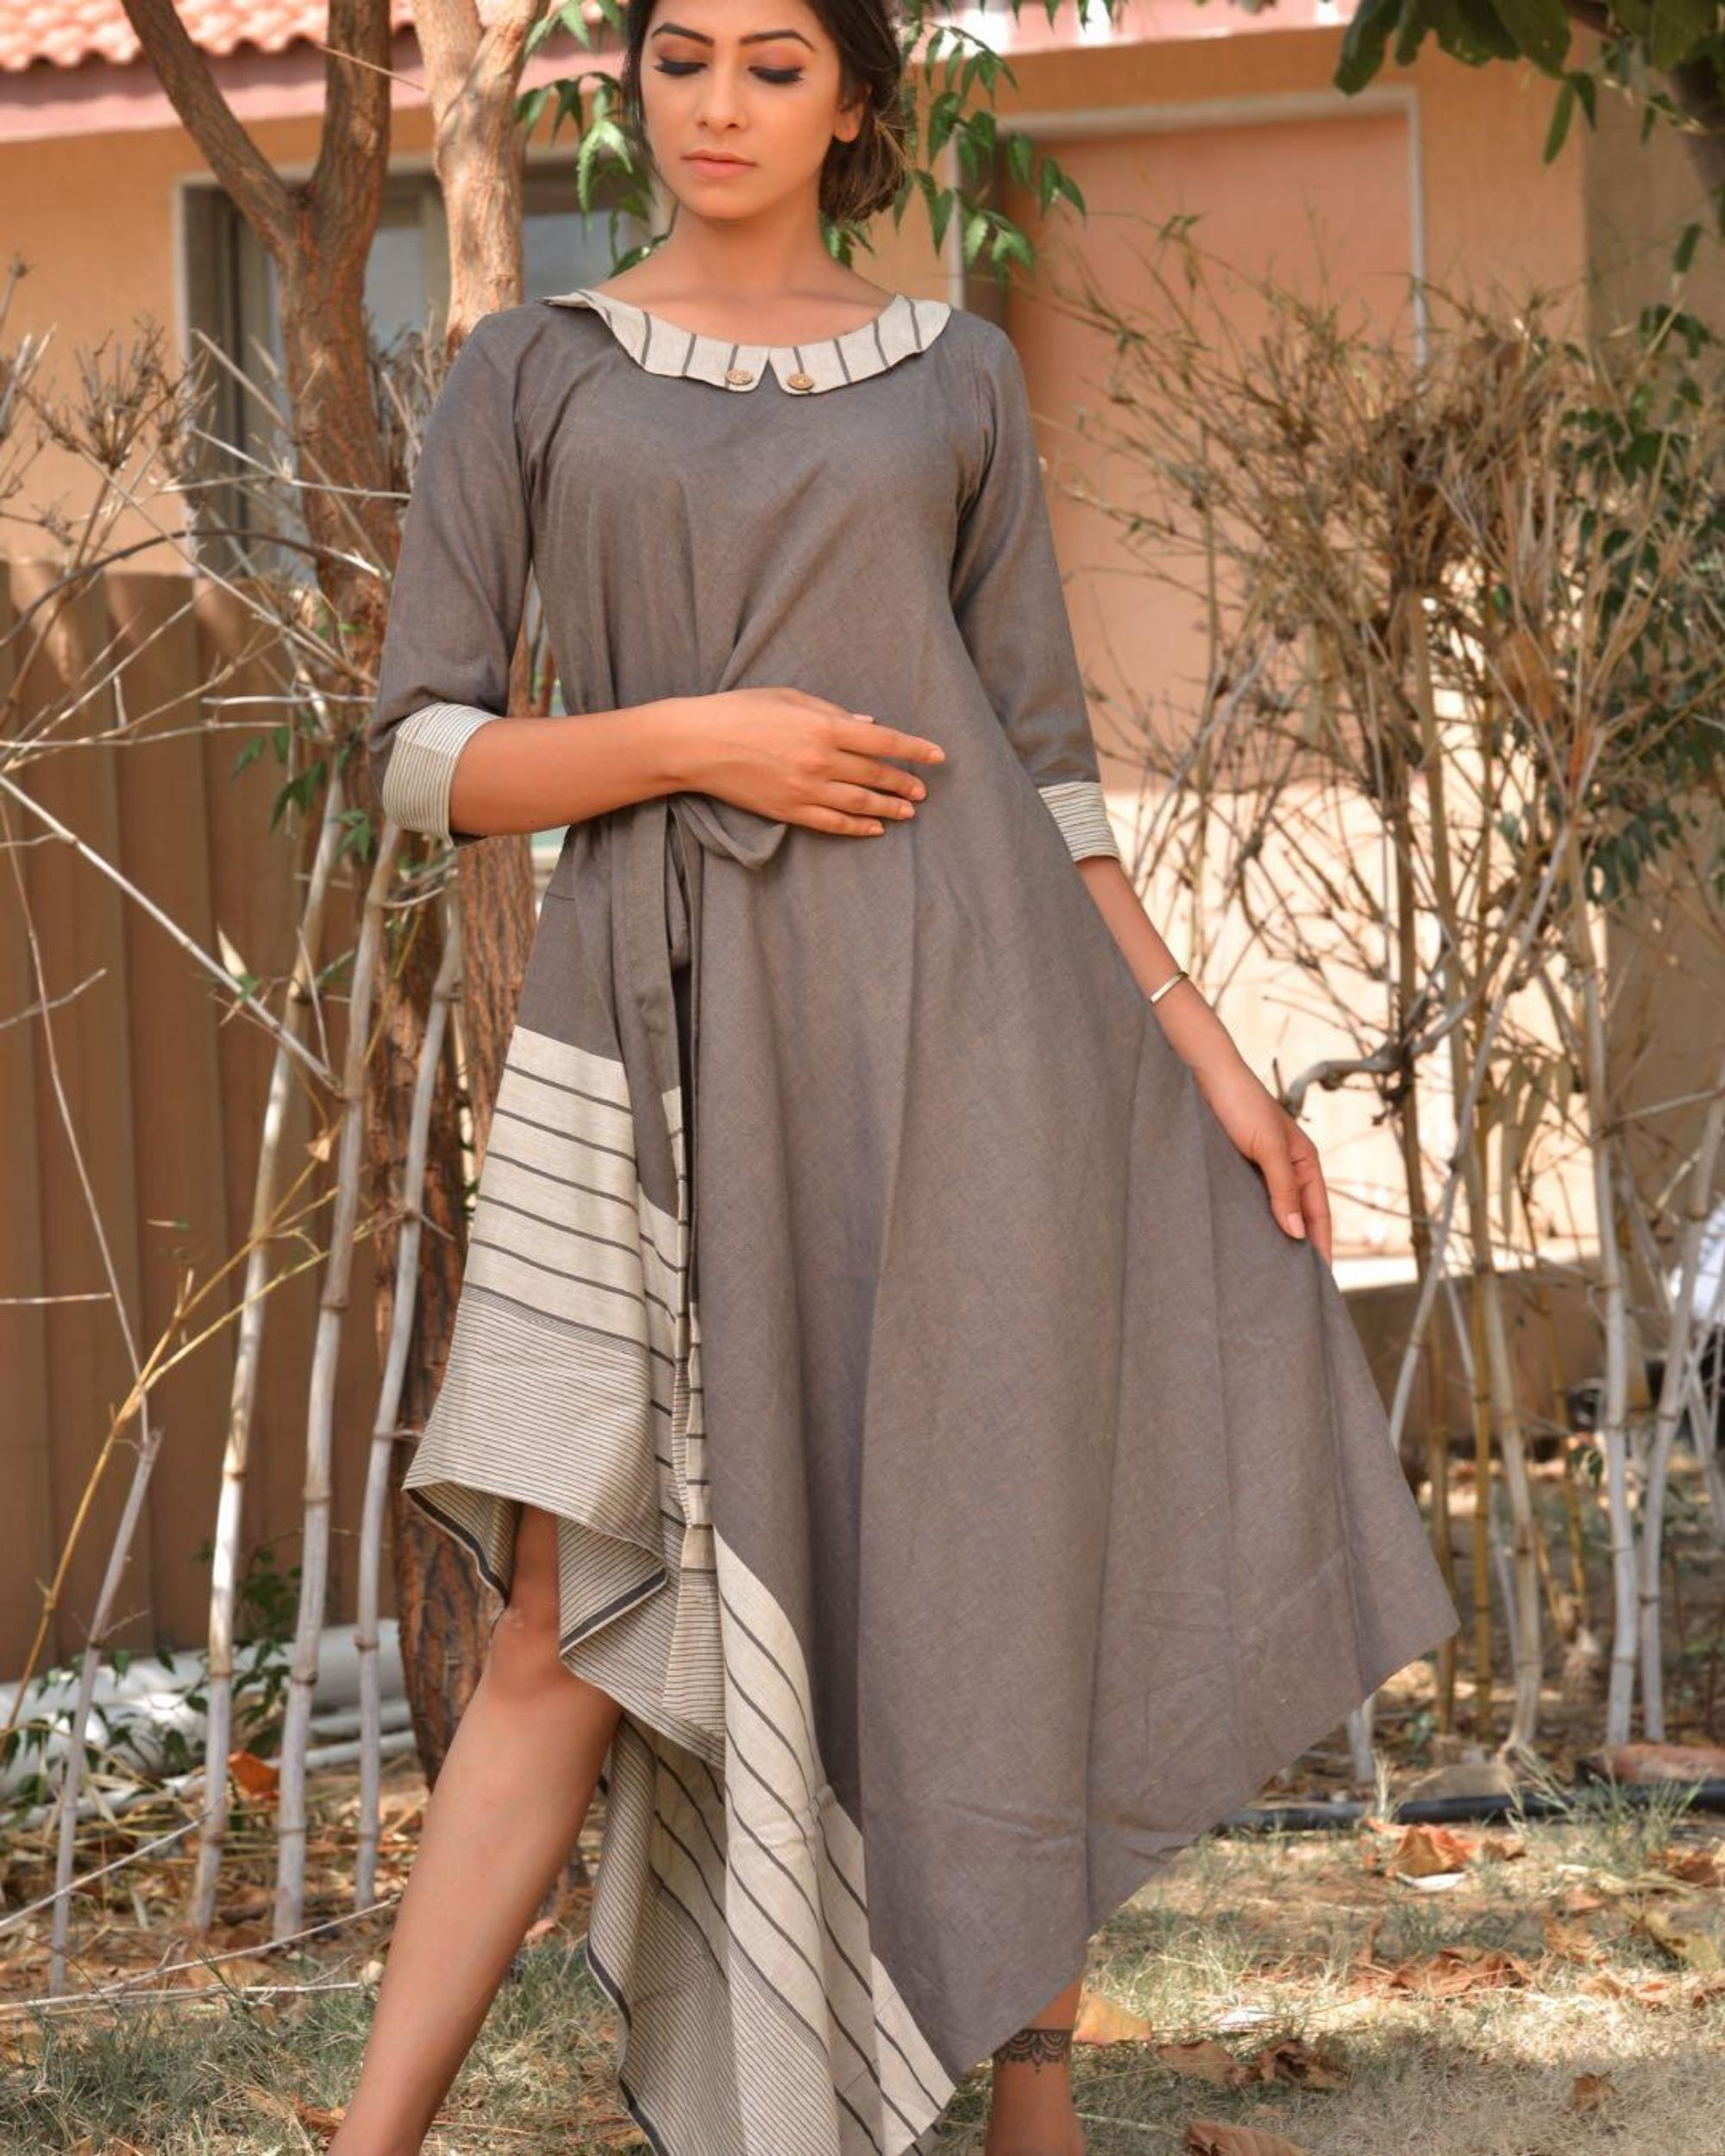 Grey and white side tie-up dress